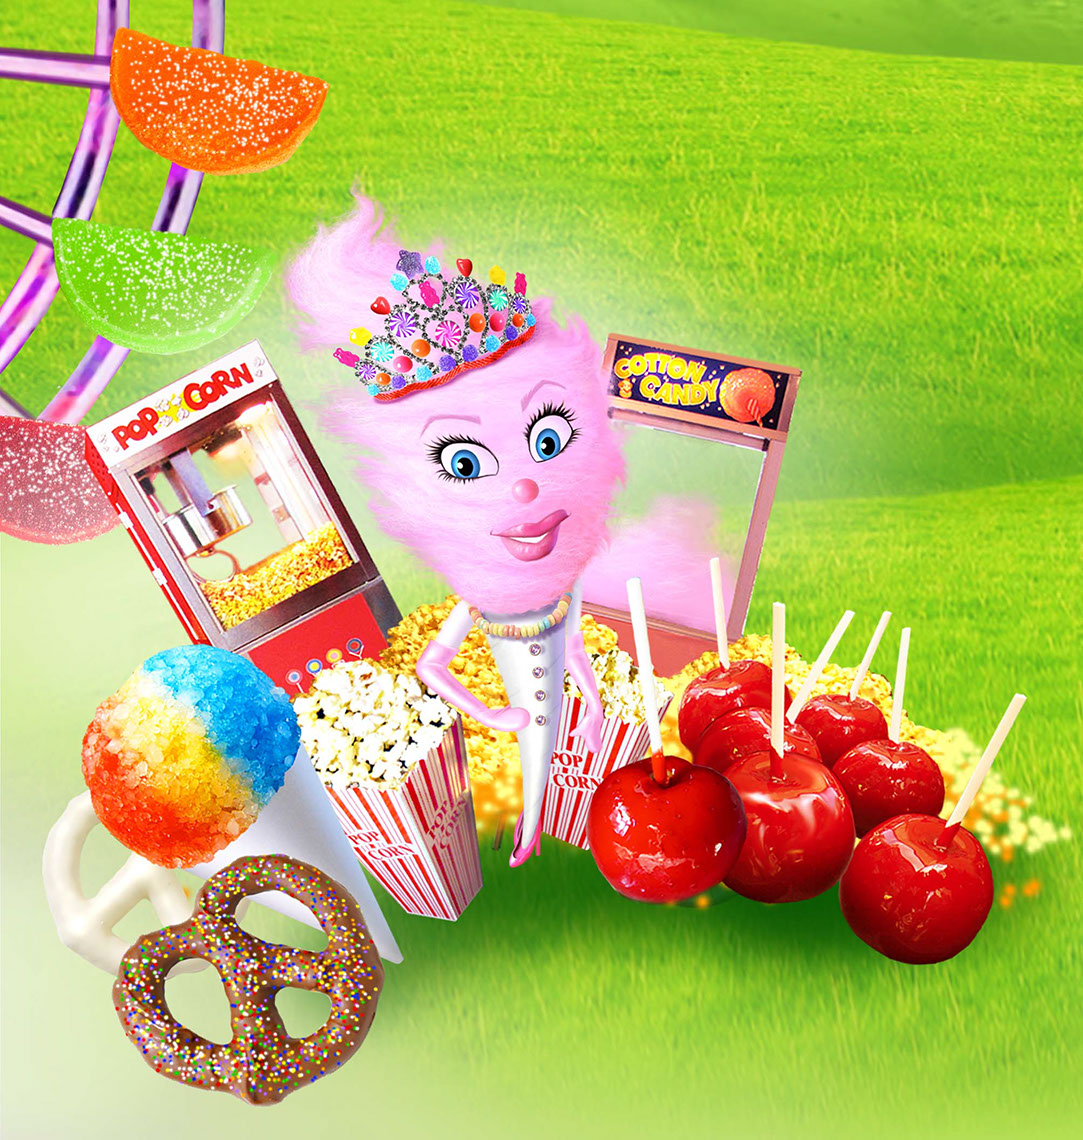 illustration-Photo-Imaging_Food_Cotton Candy Queen-Jerry LoFaro